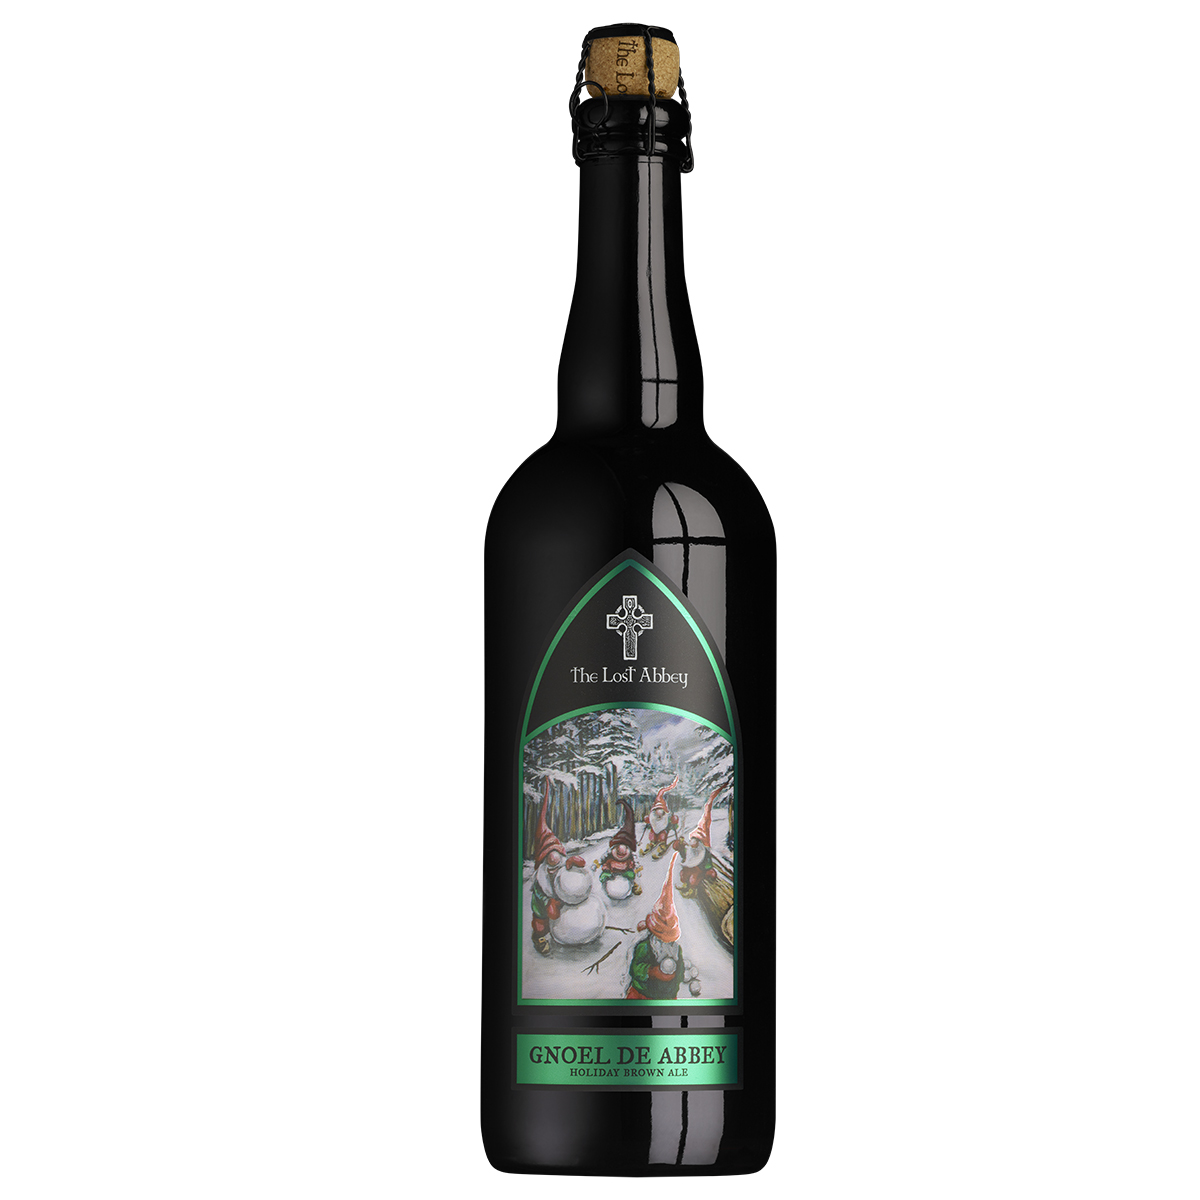 Gnoel de Abbey Ale - 750ml MAIN